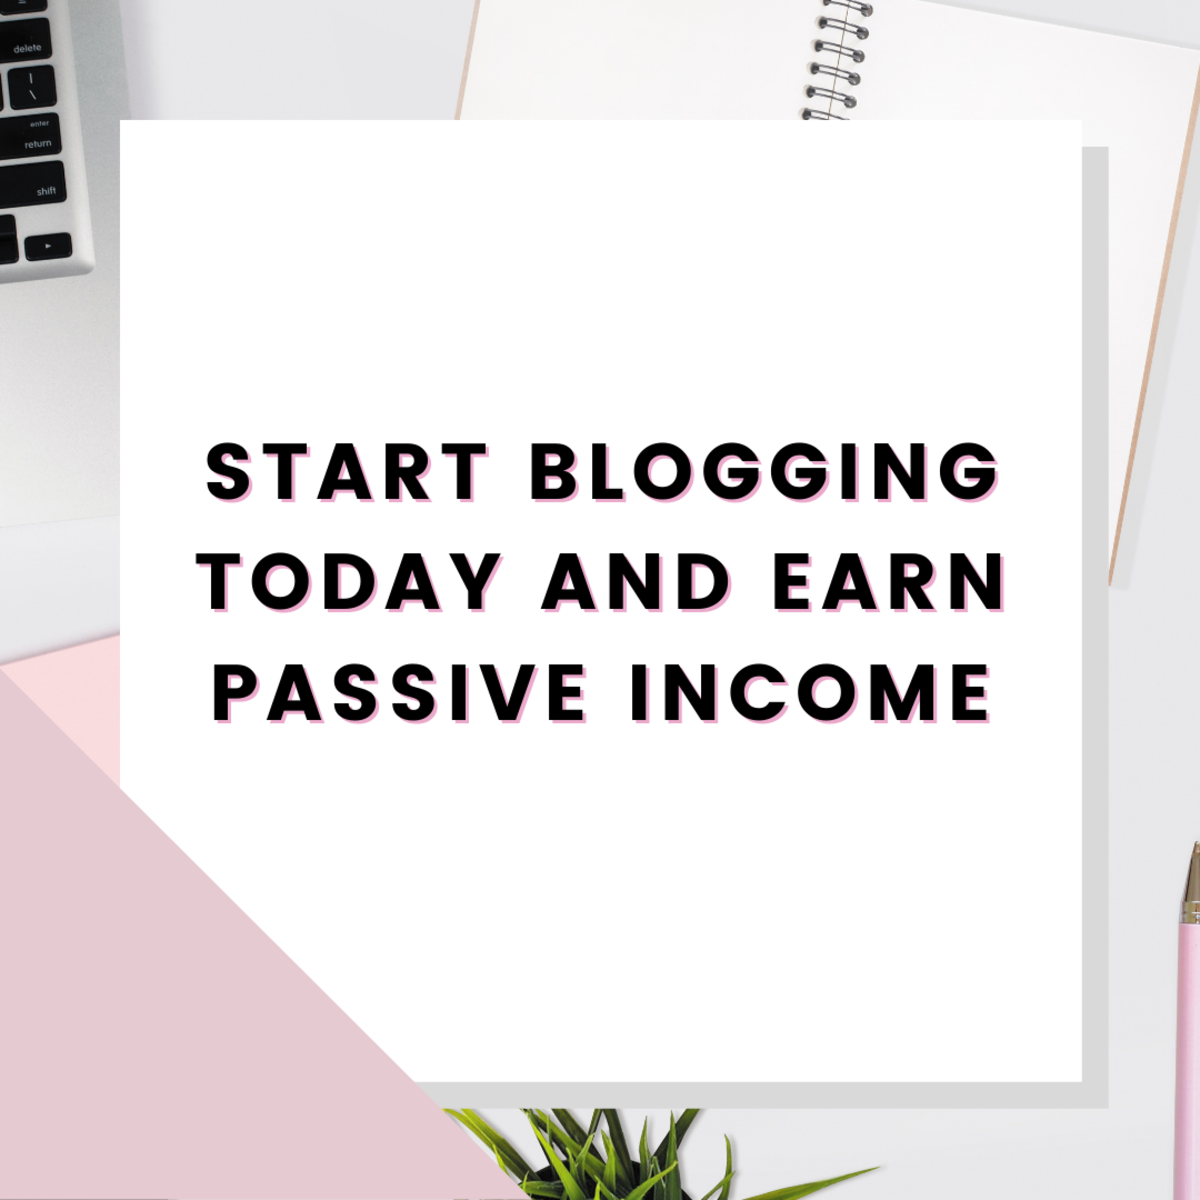 Master The Skills Of Make Money Blogging And Be Successful